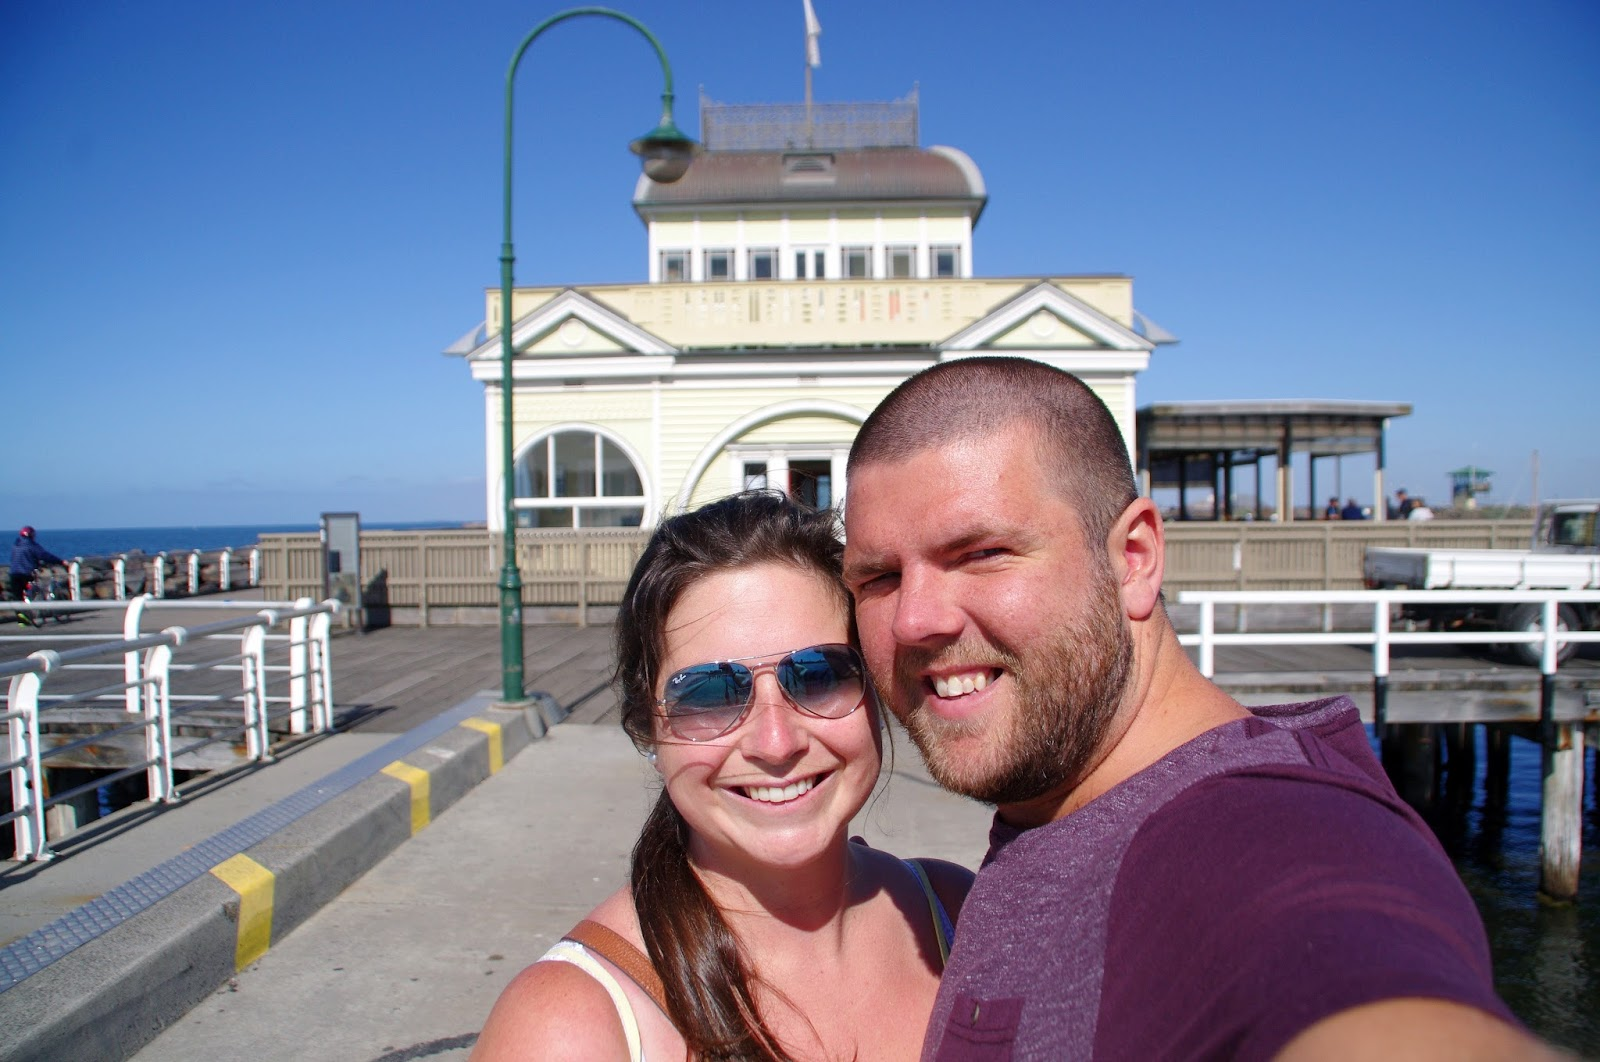 Couple at Pavillion on St Kilda Pier Melbourne